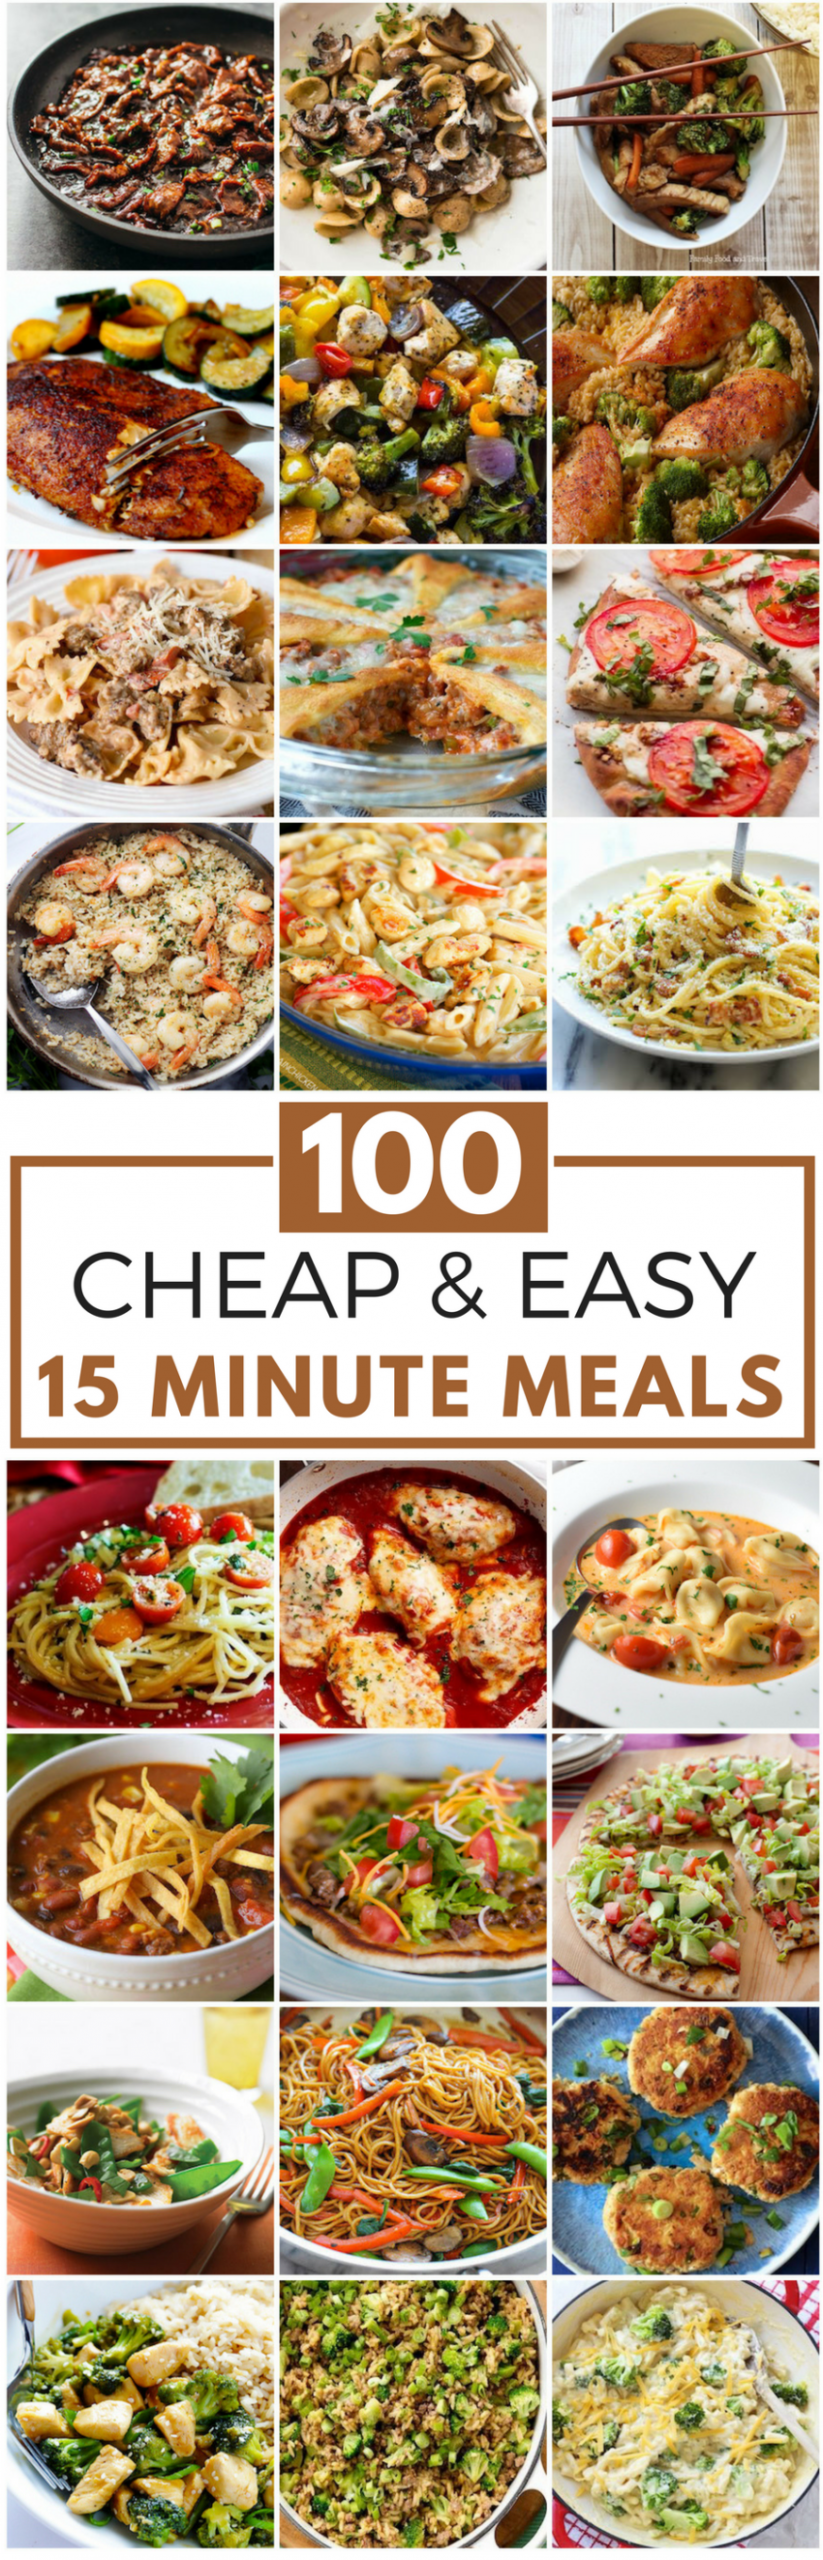 100 Cheap & Easy 15 Minute Meals | Main Dishes | Recetas ..